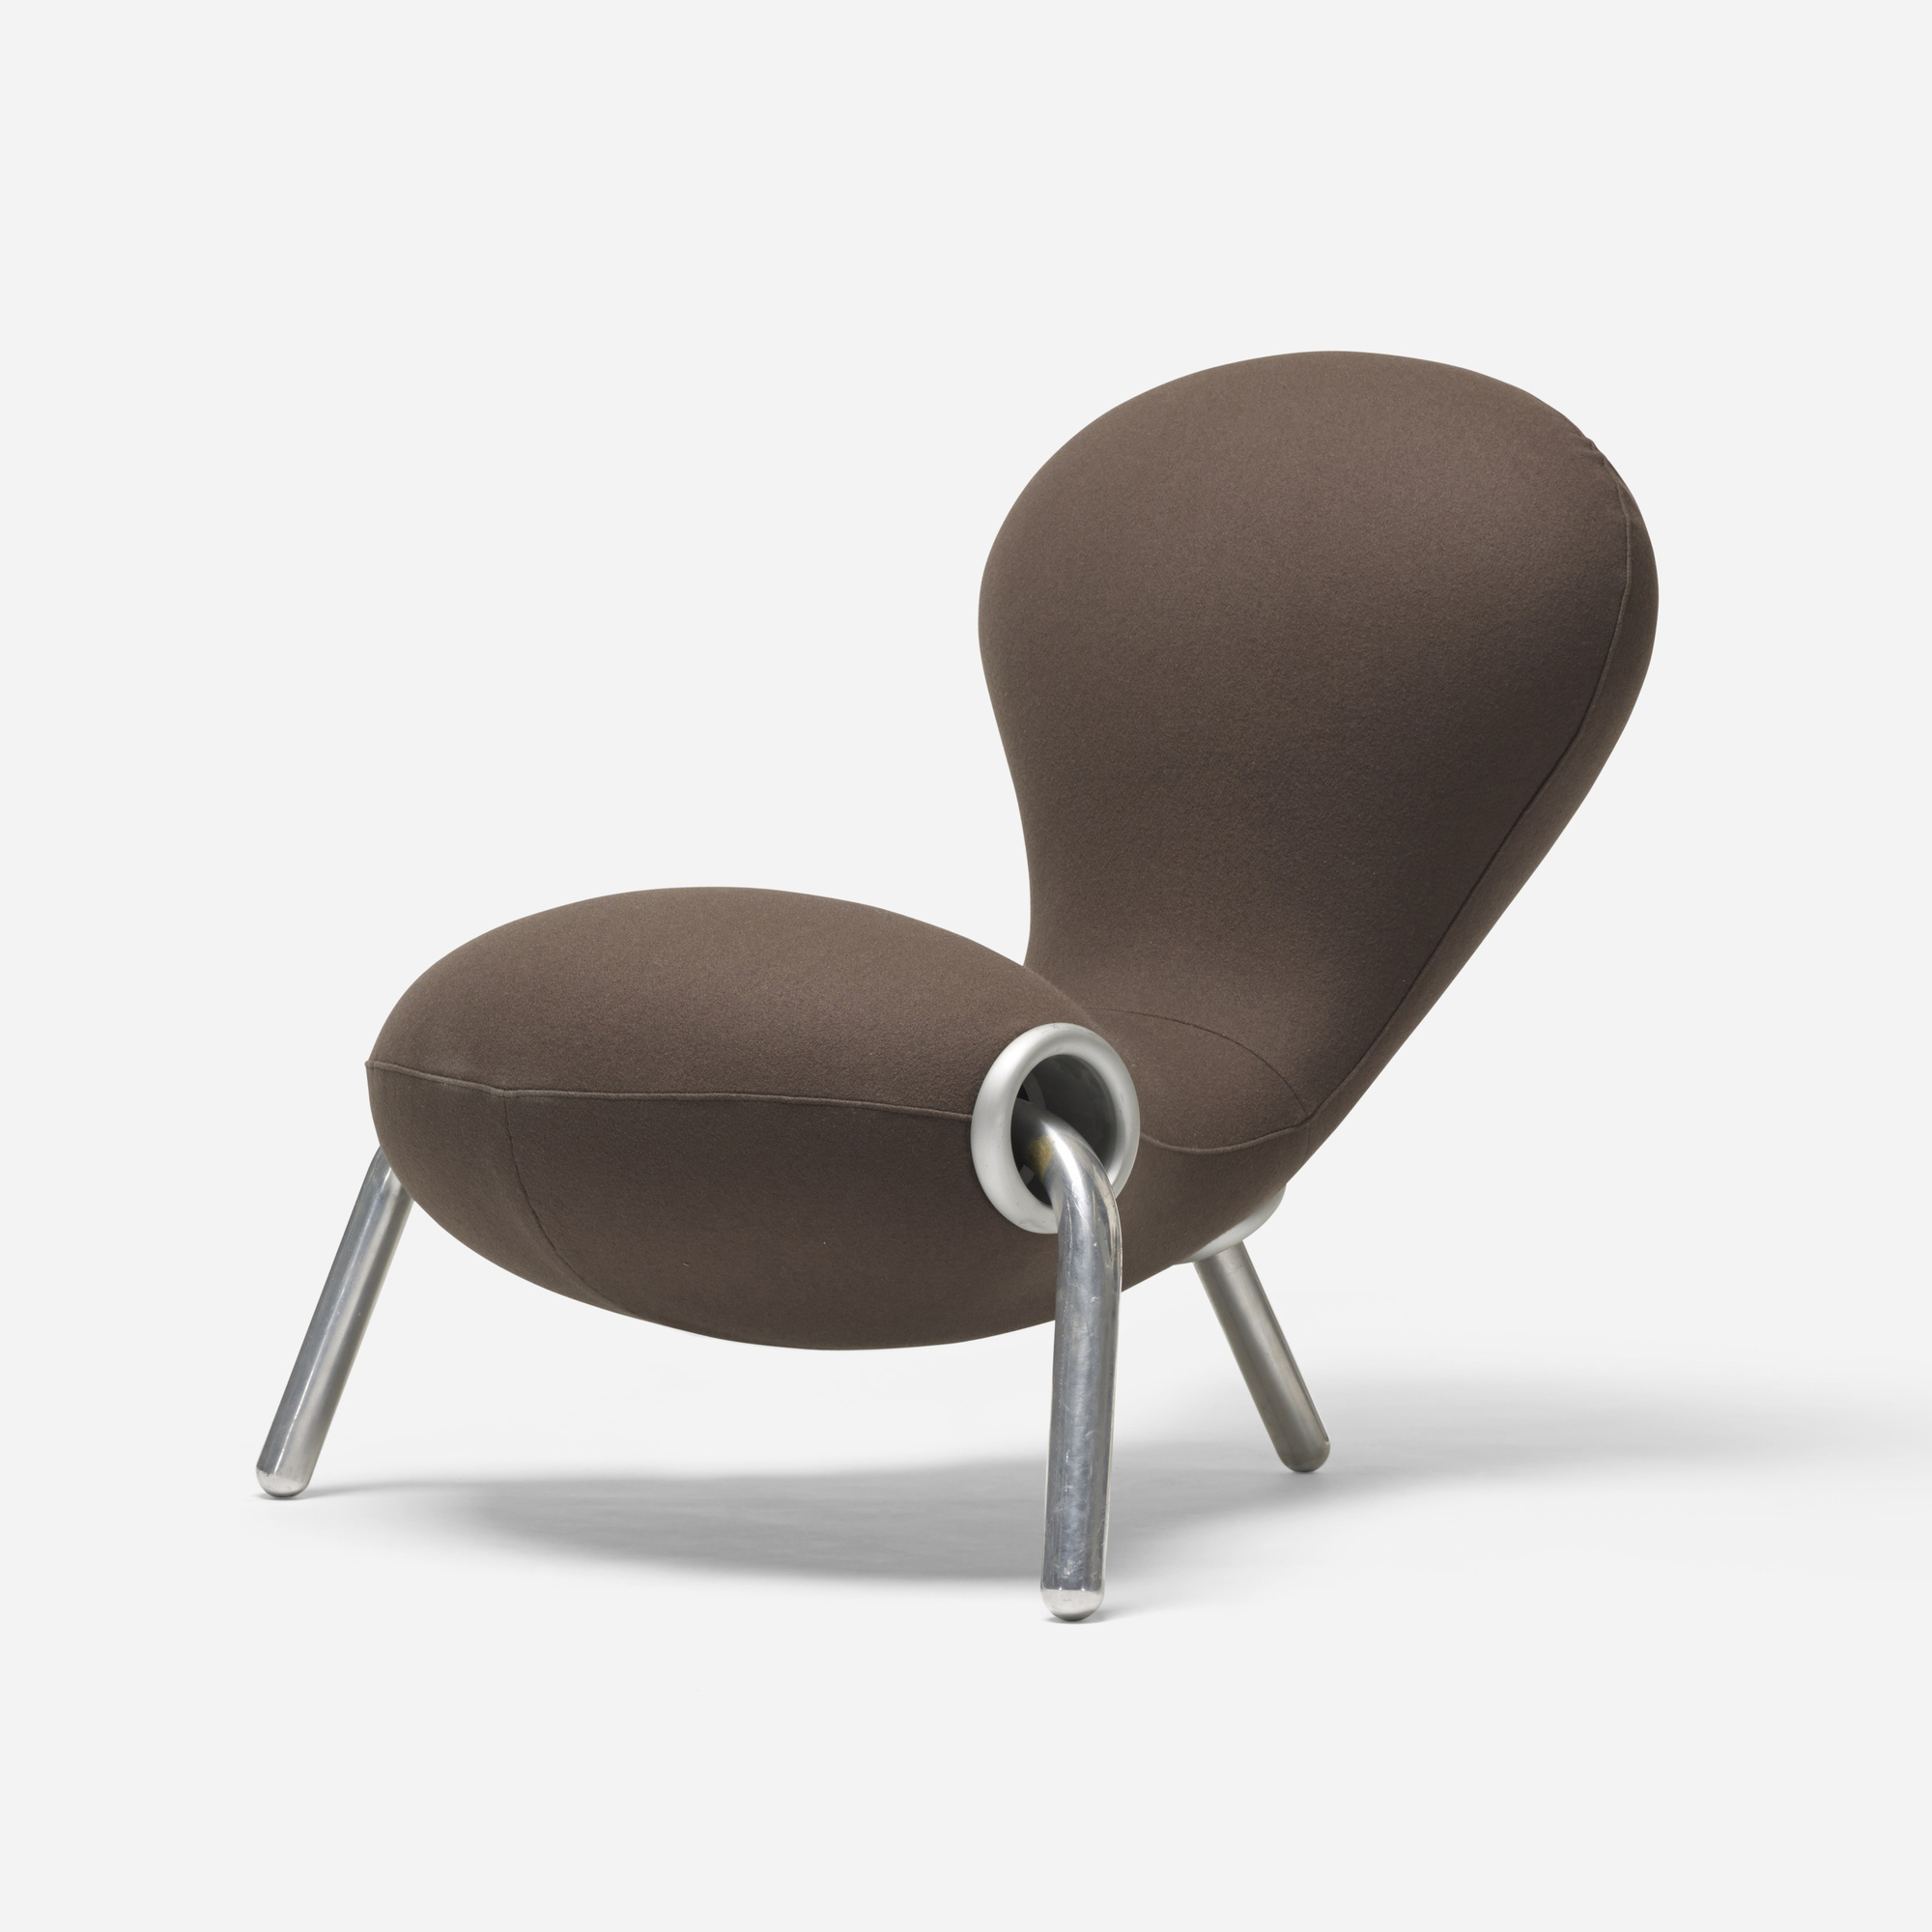 216: Marc Newson / Embryo chair (1 of 2)